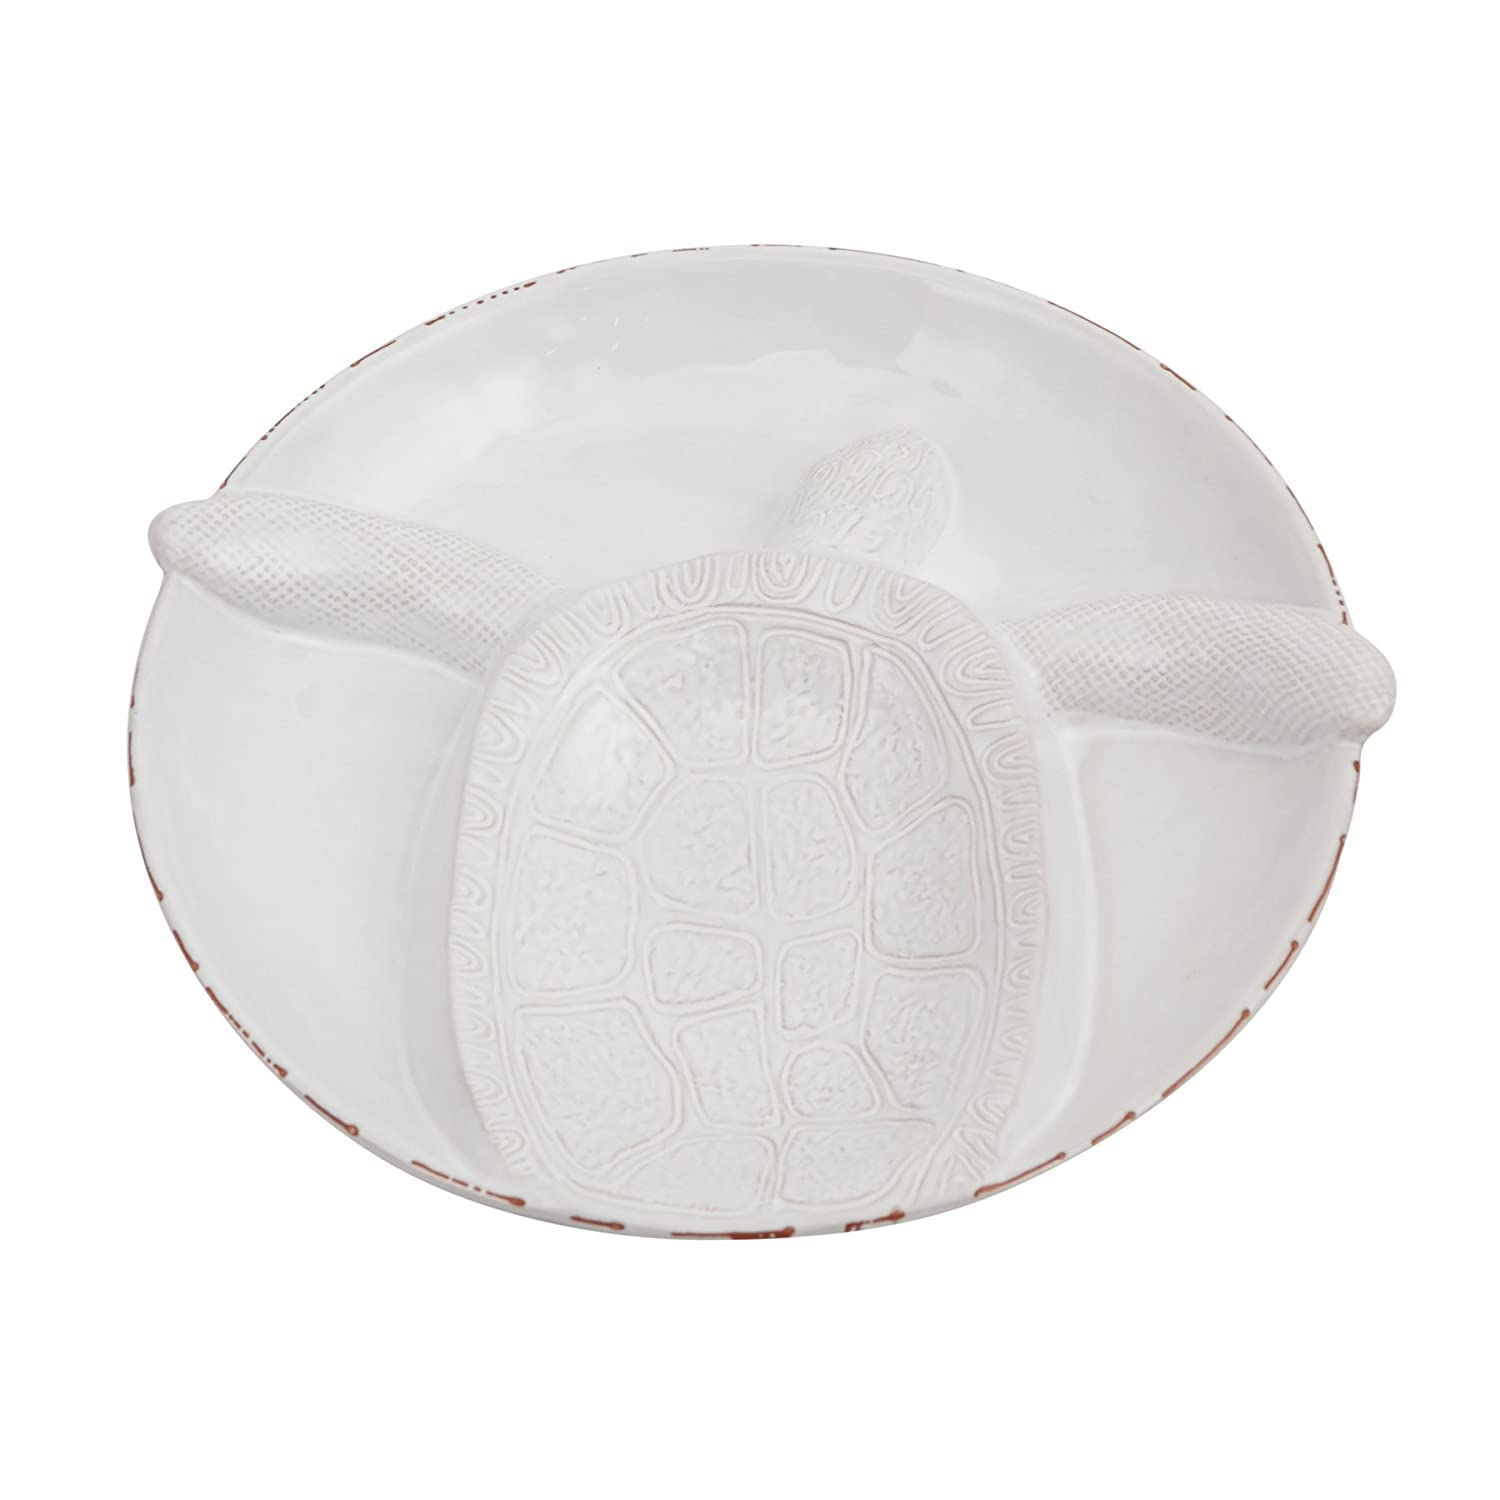 Mud Pie Turtle Section Serving Bowl Platter, White